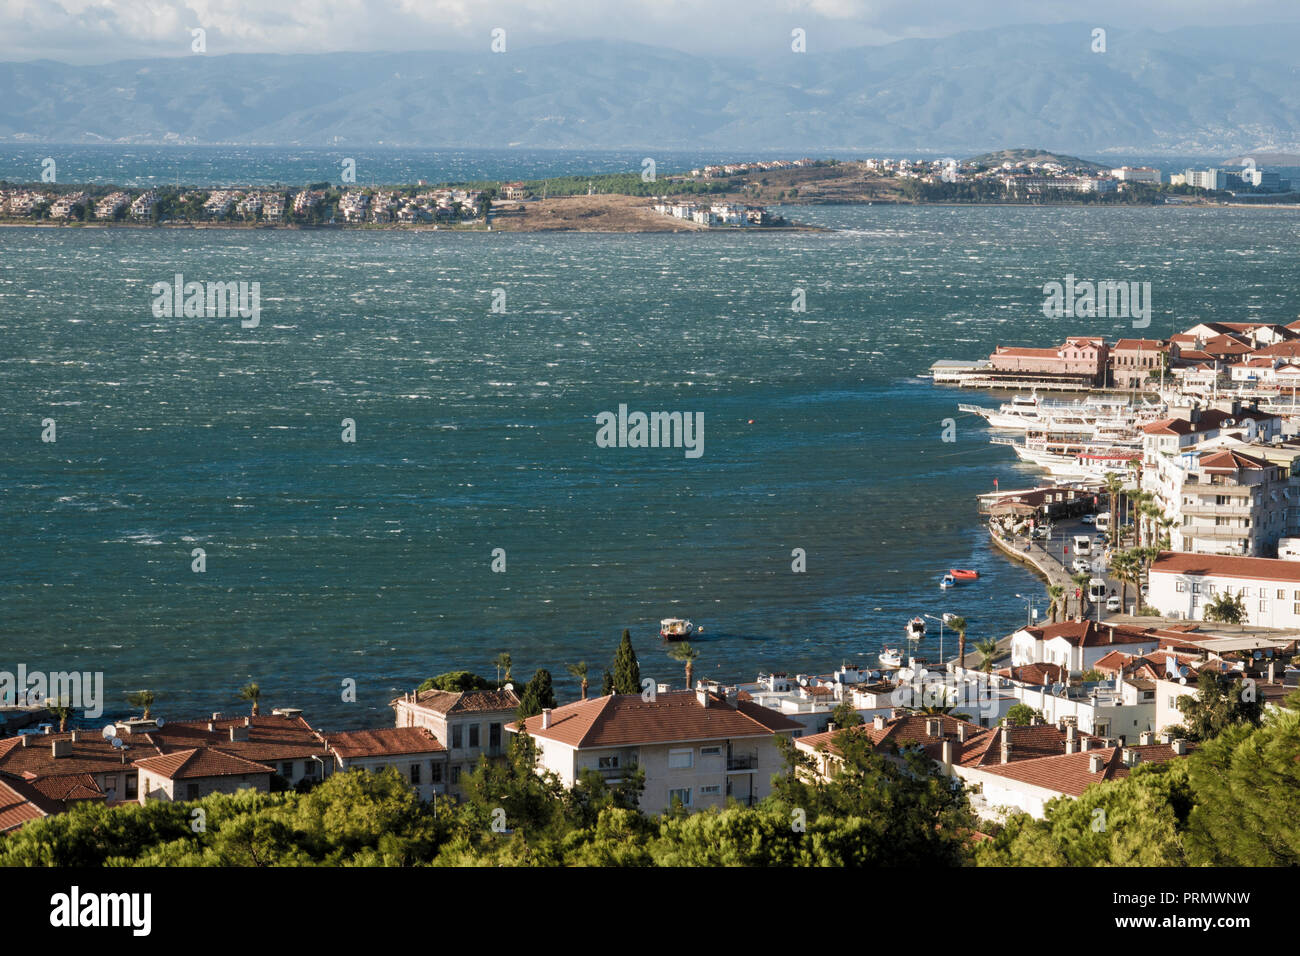 Strong winds blowing in the scenic coastal town of Ayvalik, Turkey - Stock Image